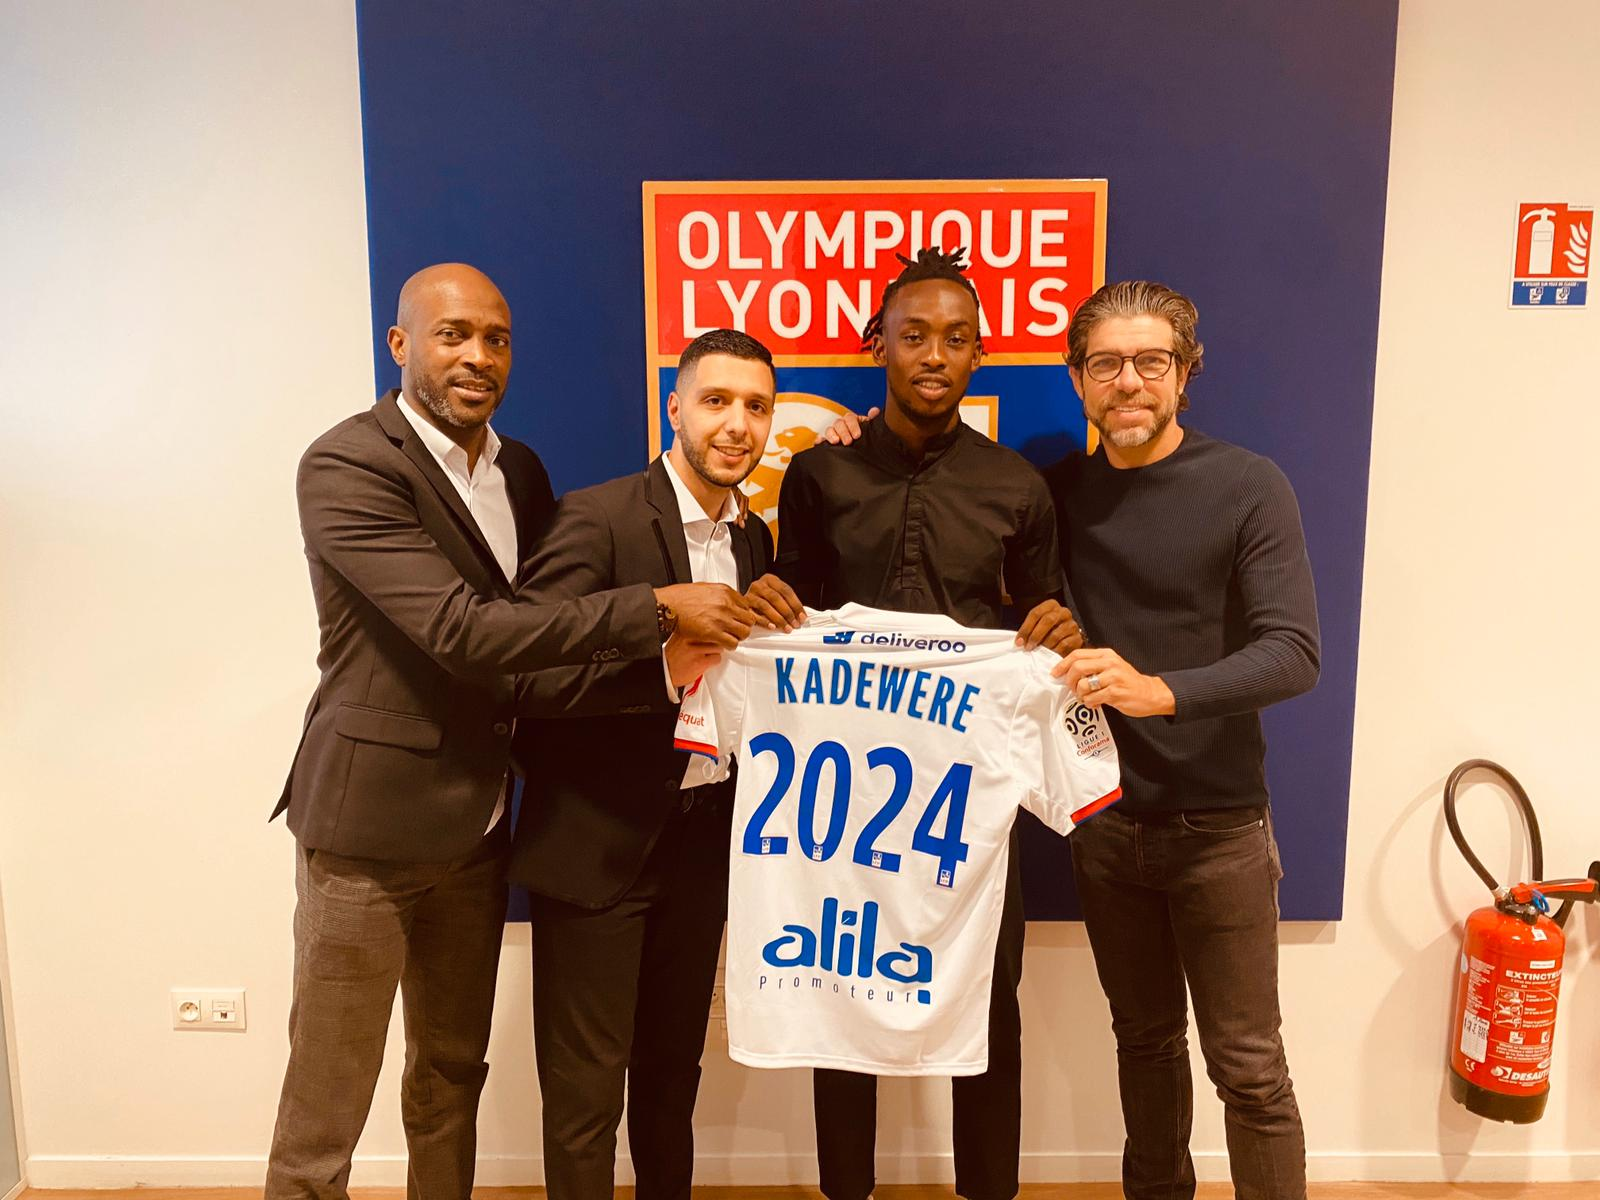 Lyon unveil Tino Kadewere - soccer24.co.zw